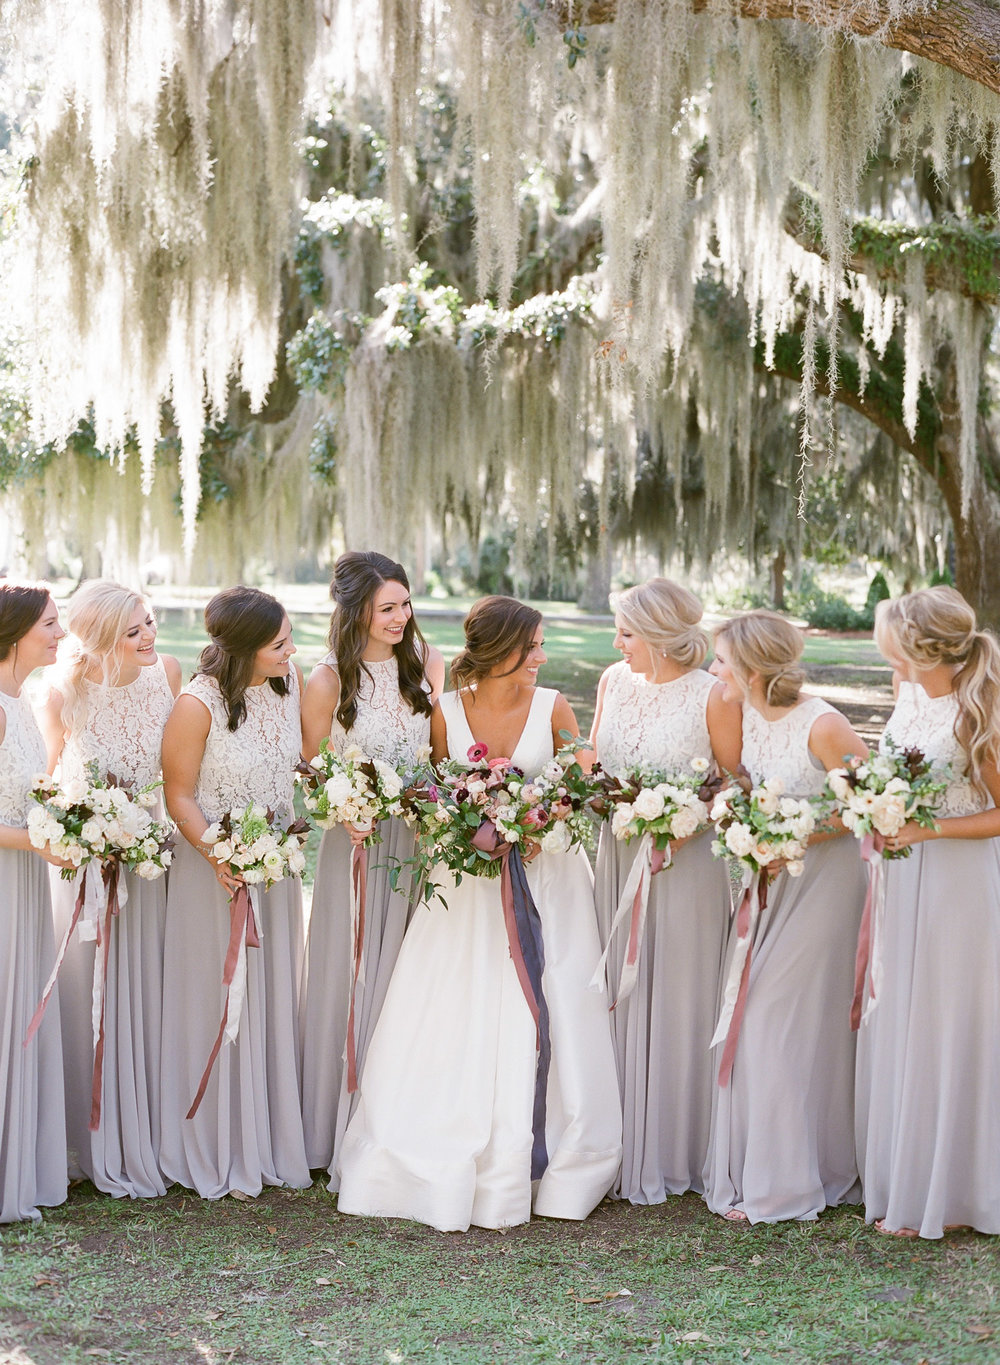 Charleston-Wedding-Photographer-24.jpg